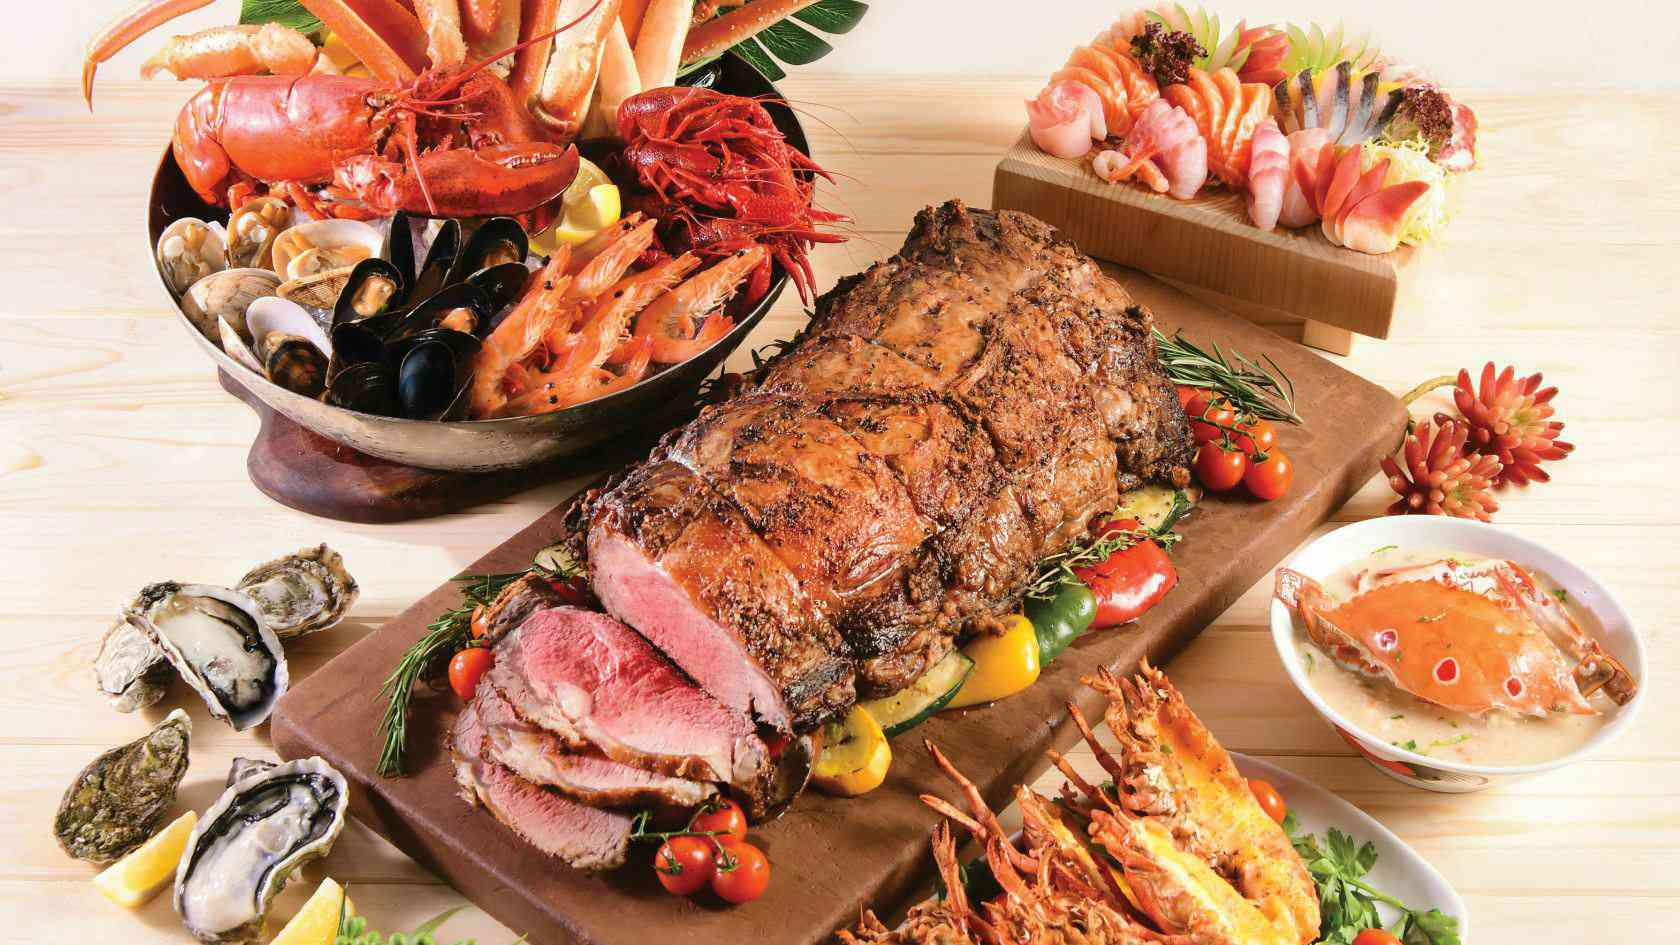 Display of roast meat, a bowl of shellfish, sushi, halved oysters and more.